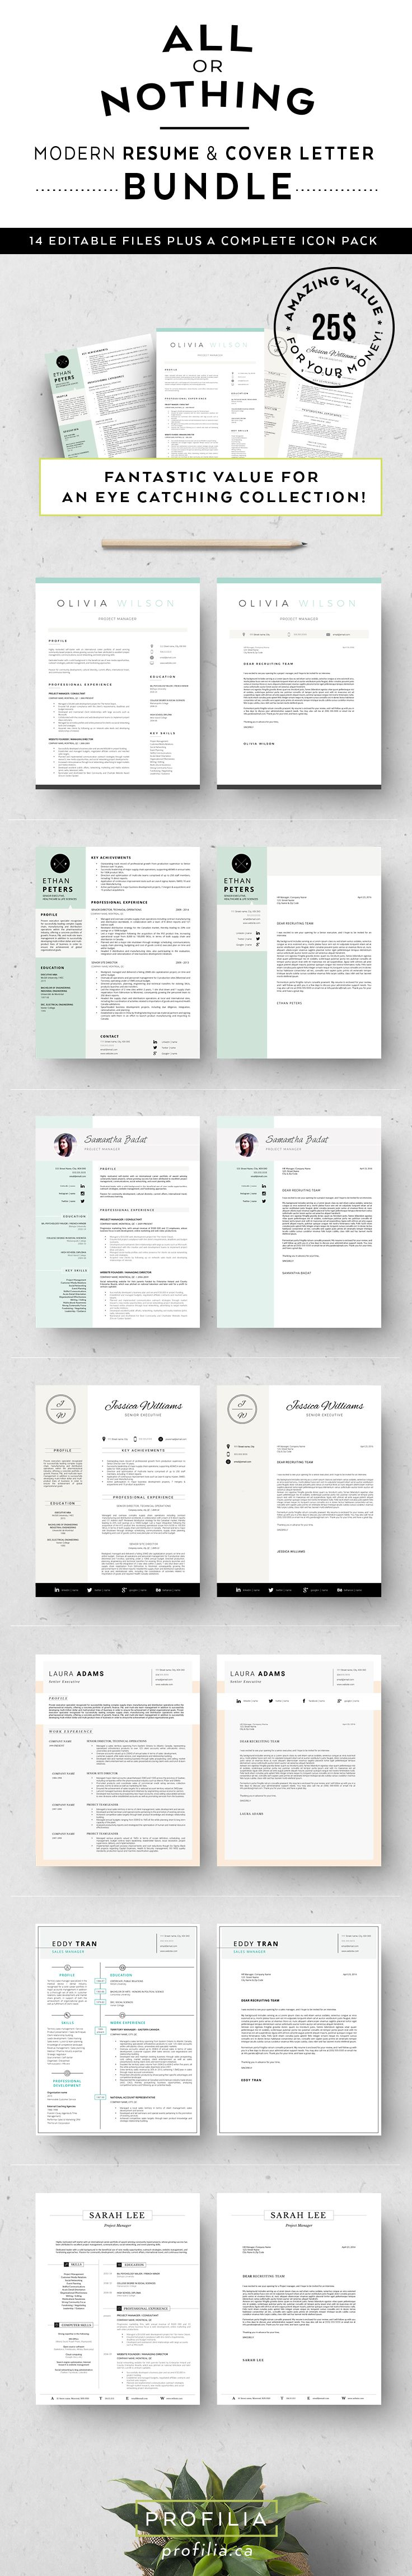 Best 25+ Professional cover letter template ideas on Pinterest ...